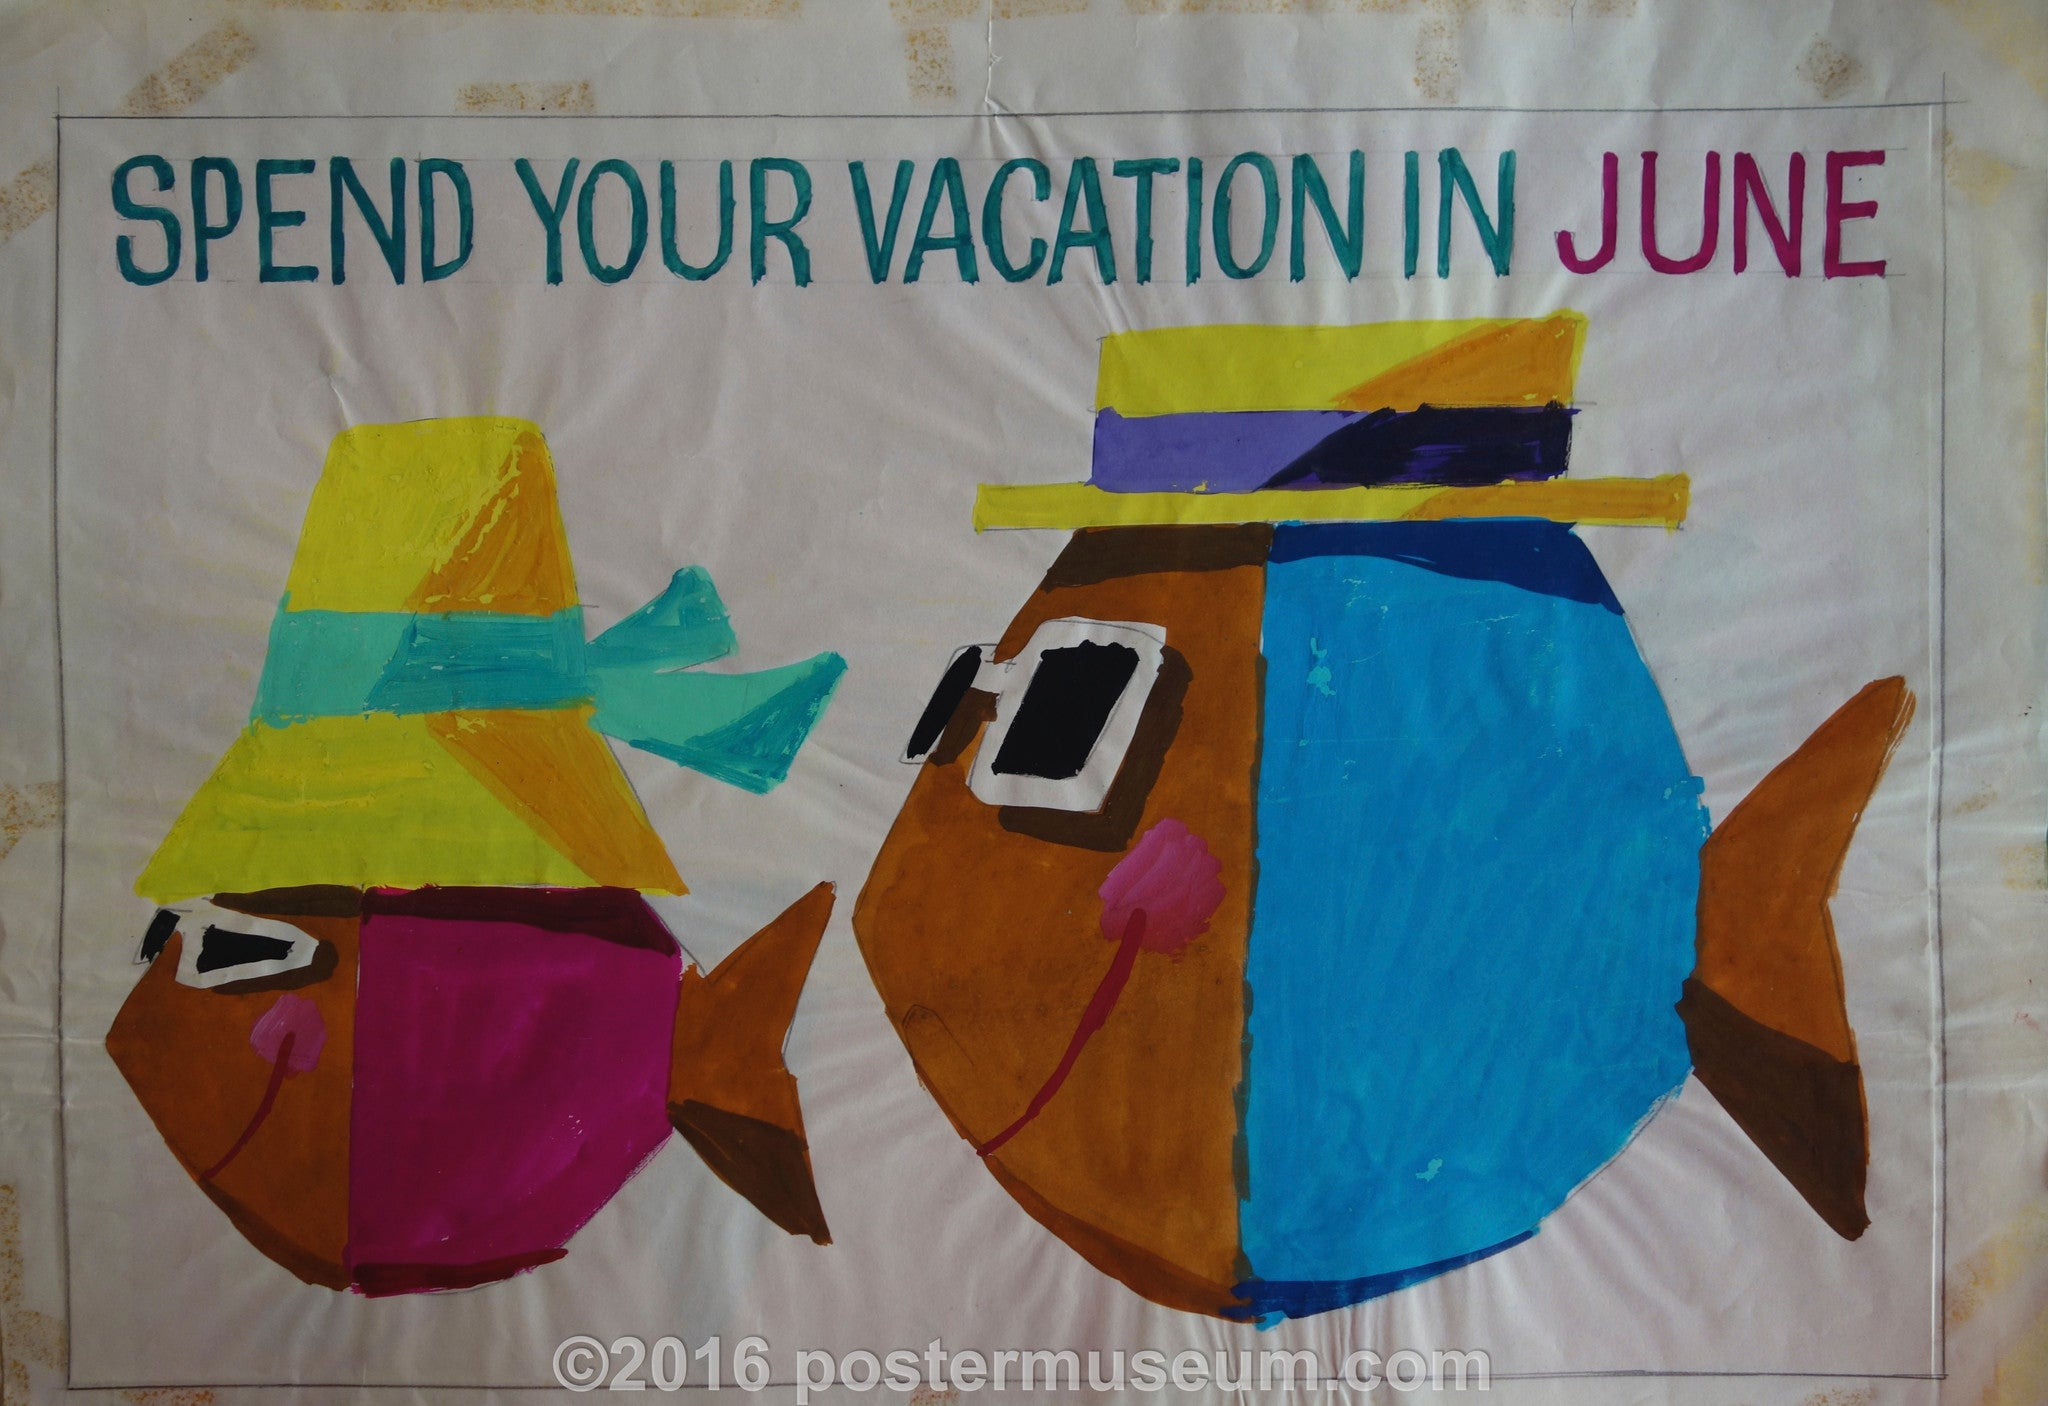 Spend Your Vacation in June (Fish with Hats v. 4)